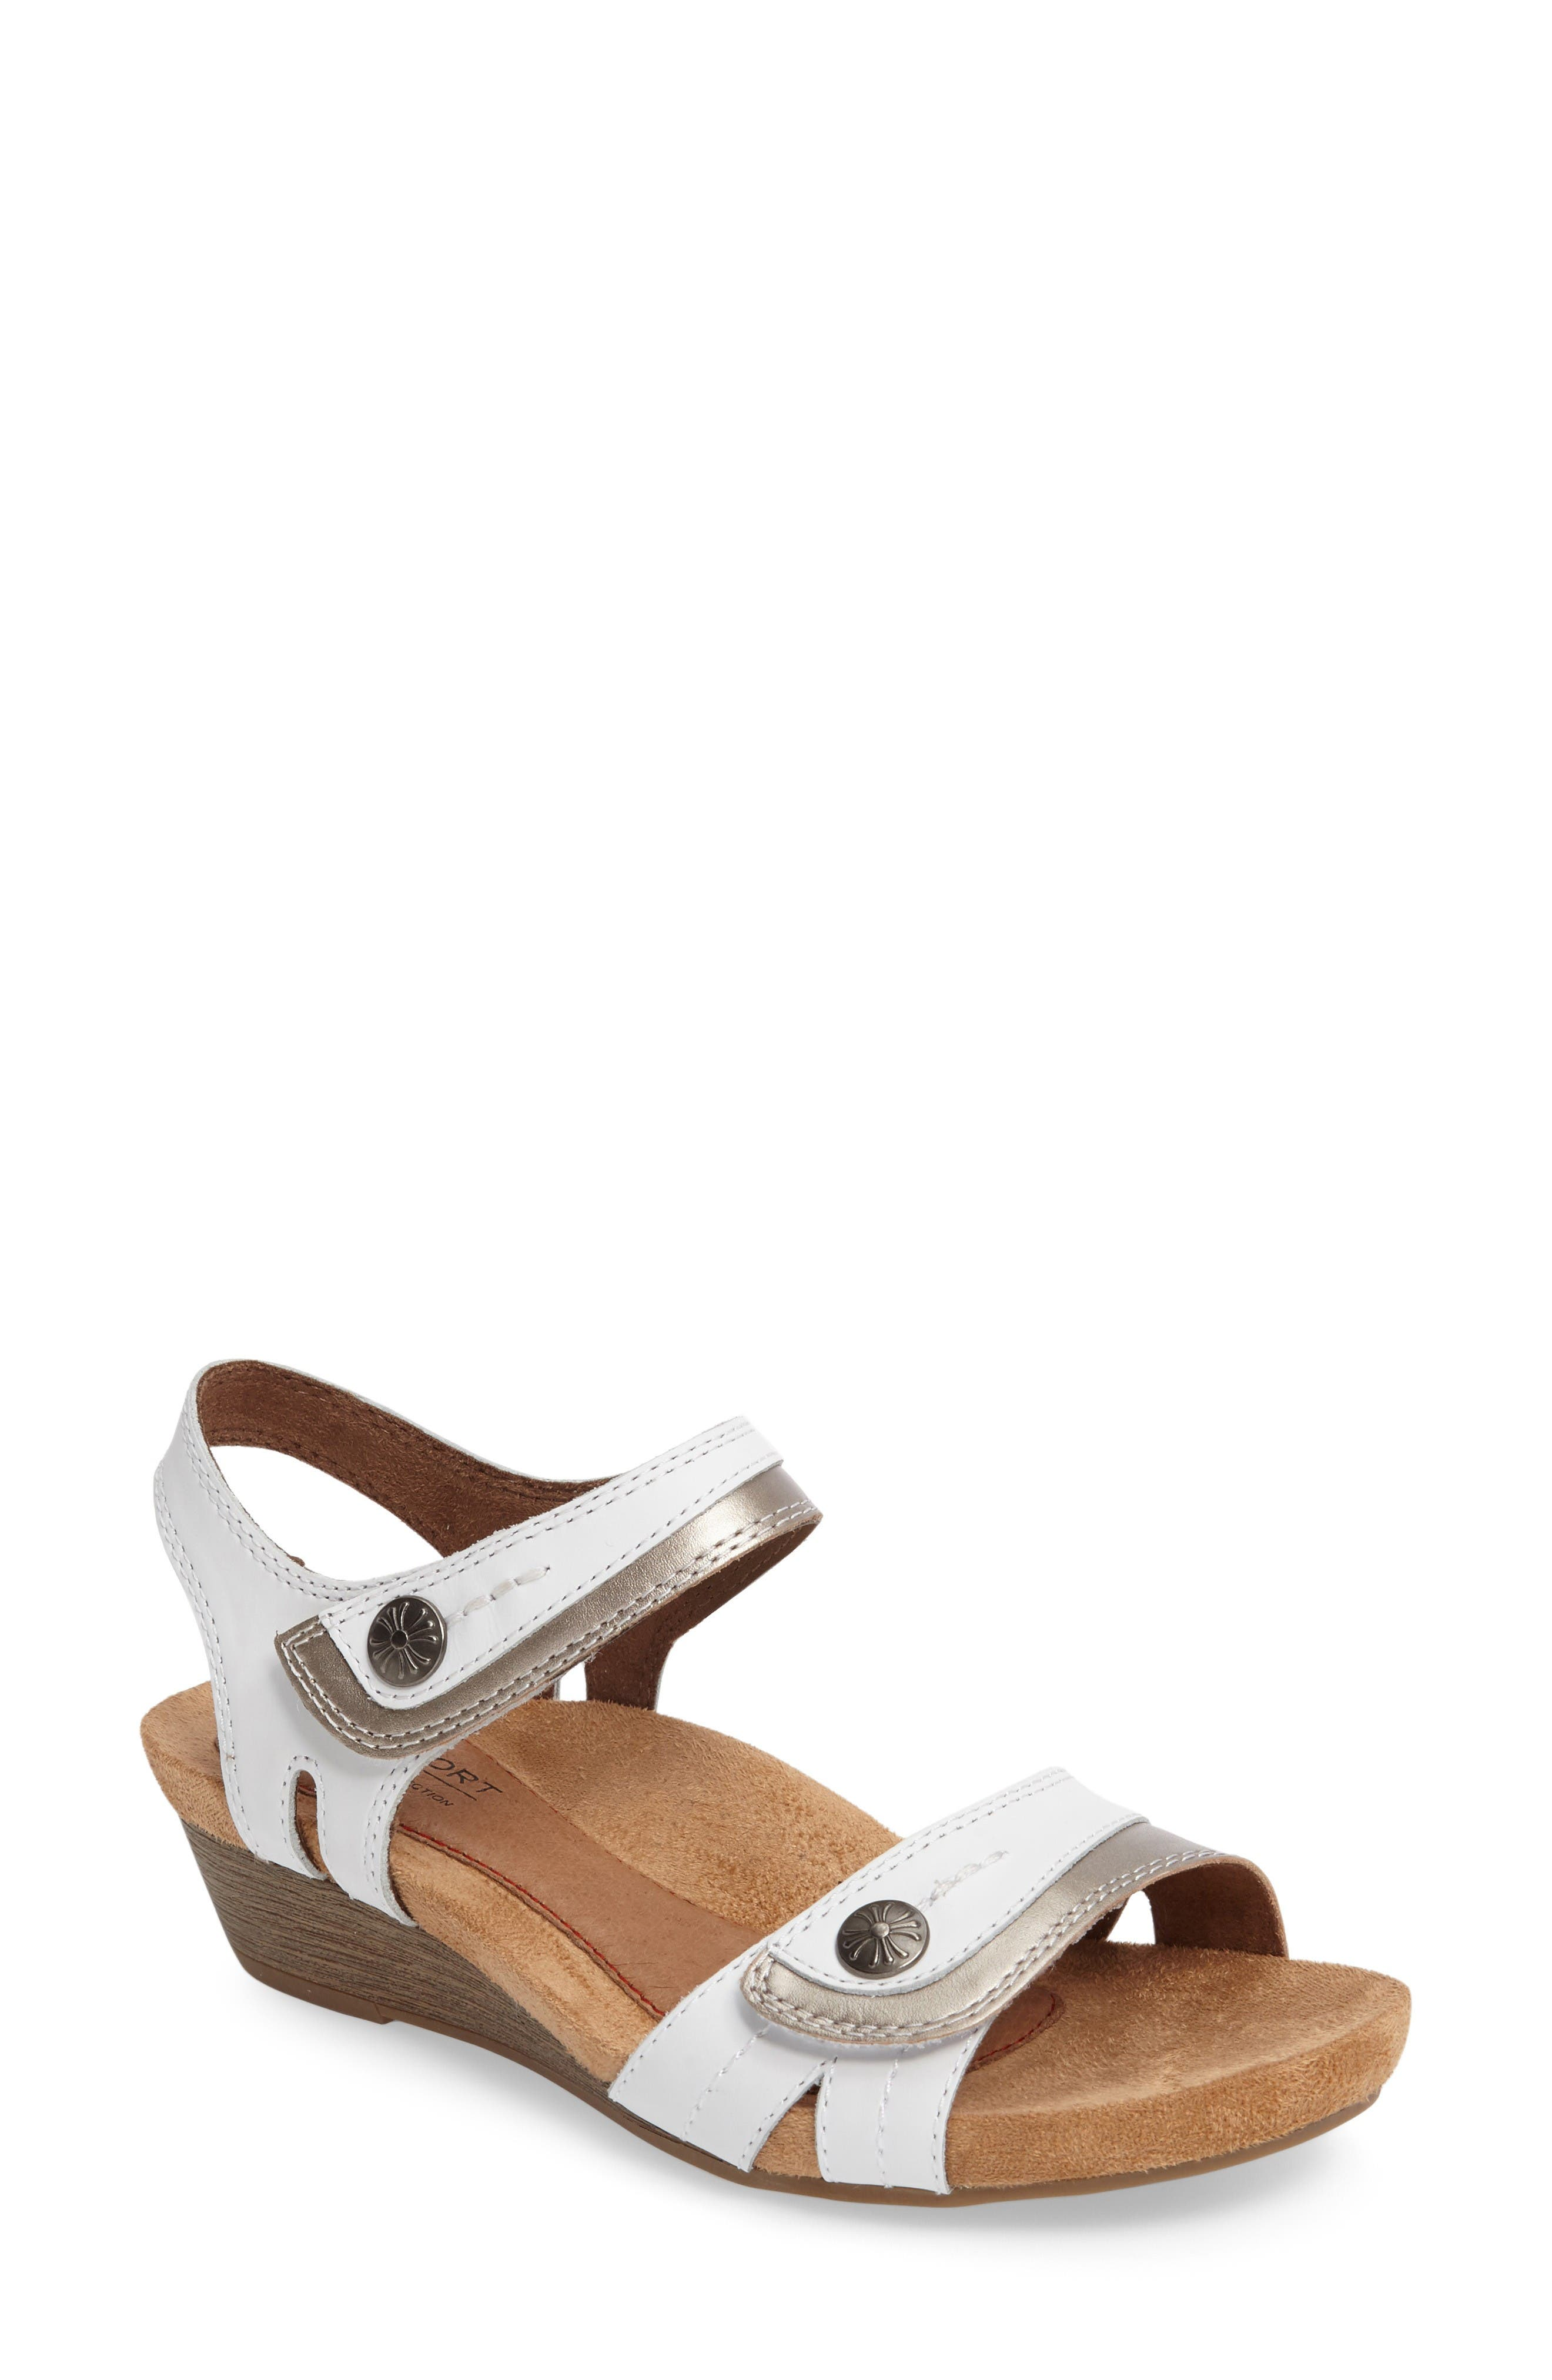 Hollywood Wedge Sandal,                             Main thumbnail 1, color,                             White Leather